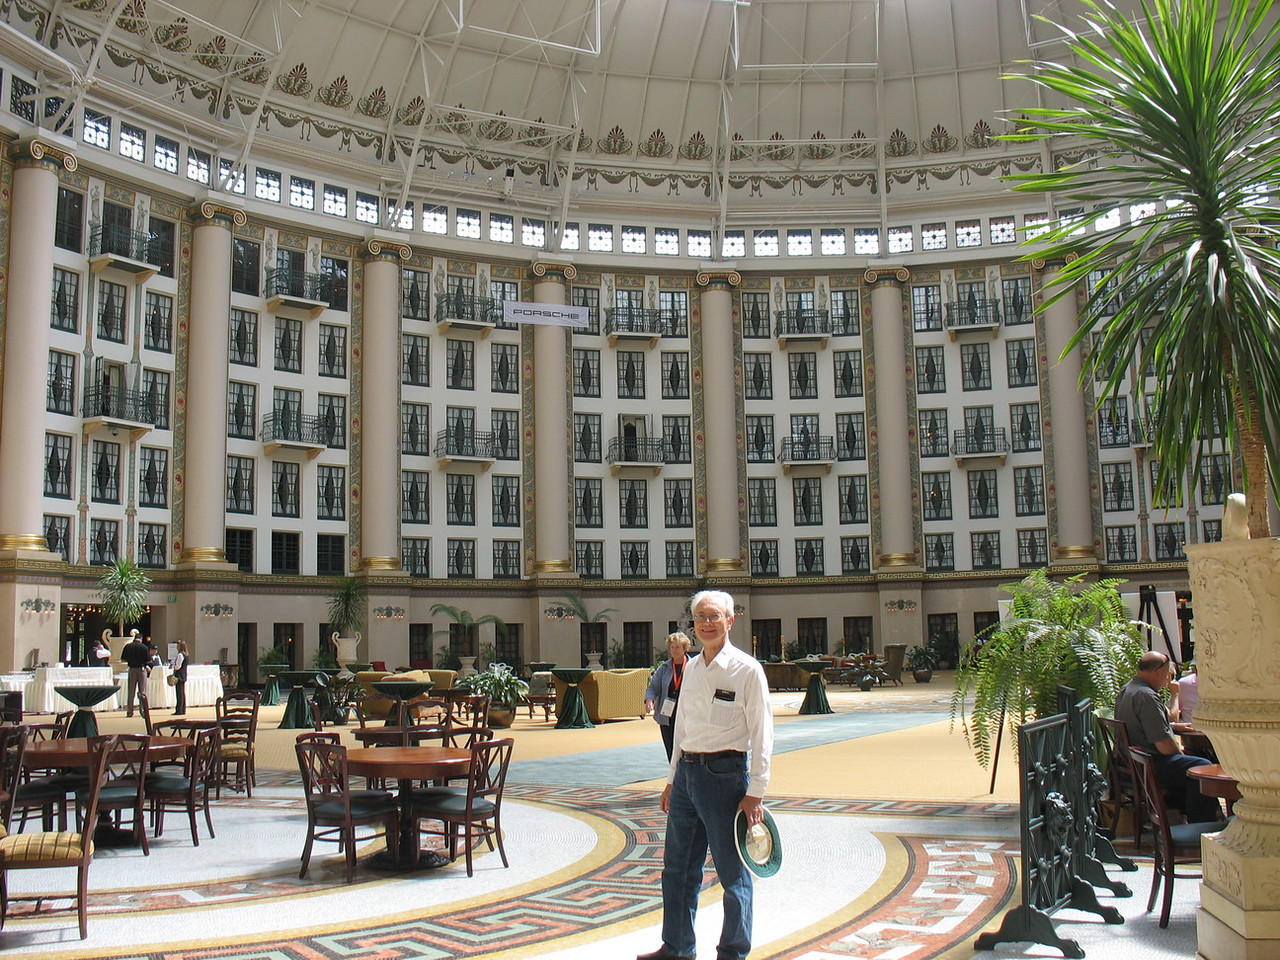 Bob standing in the Atrium, the largest free-standing dome in the world until the Astrodome was built. It is surrounded by six floors of hotel rooms.